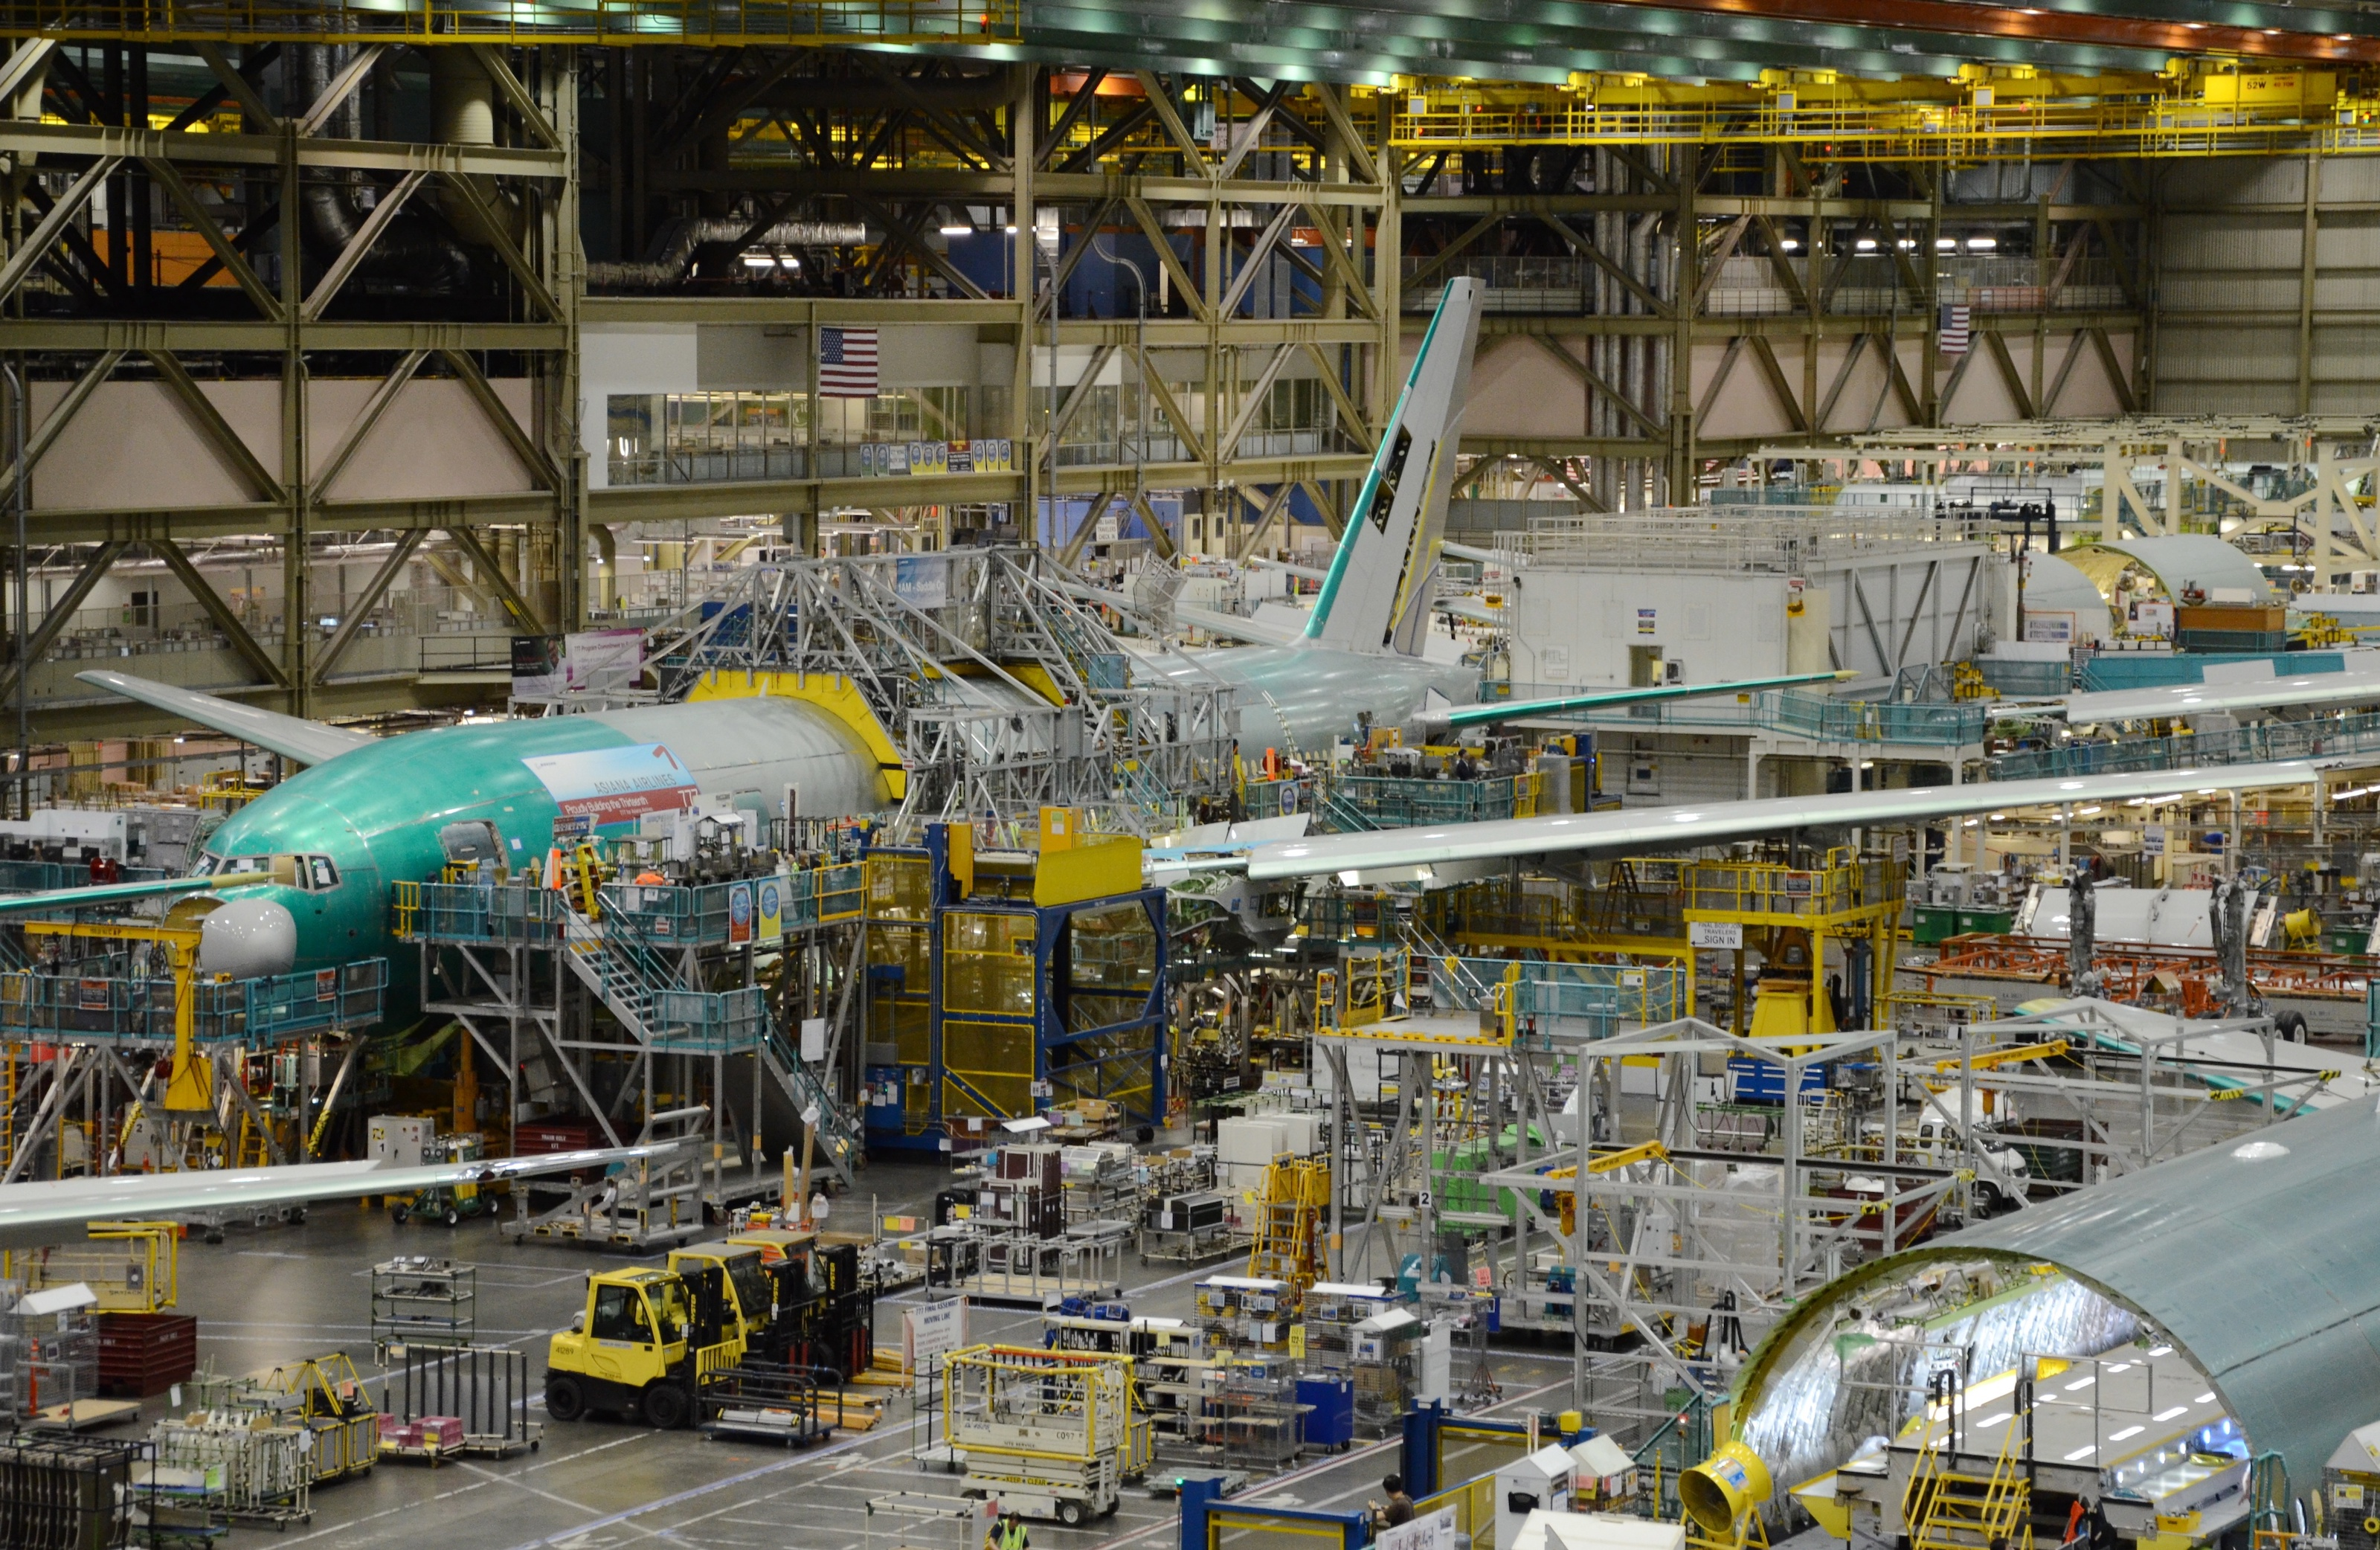 The last Boeing 777 to be powered by Pratt & Whitney engines was delivered to Asiana Airlines in the summer of 2013.